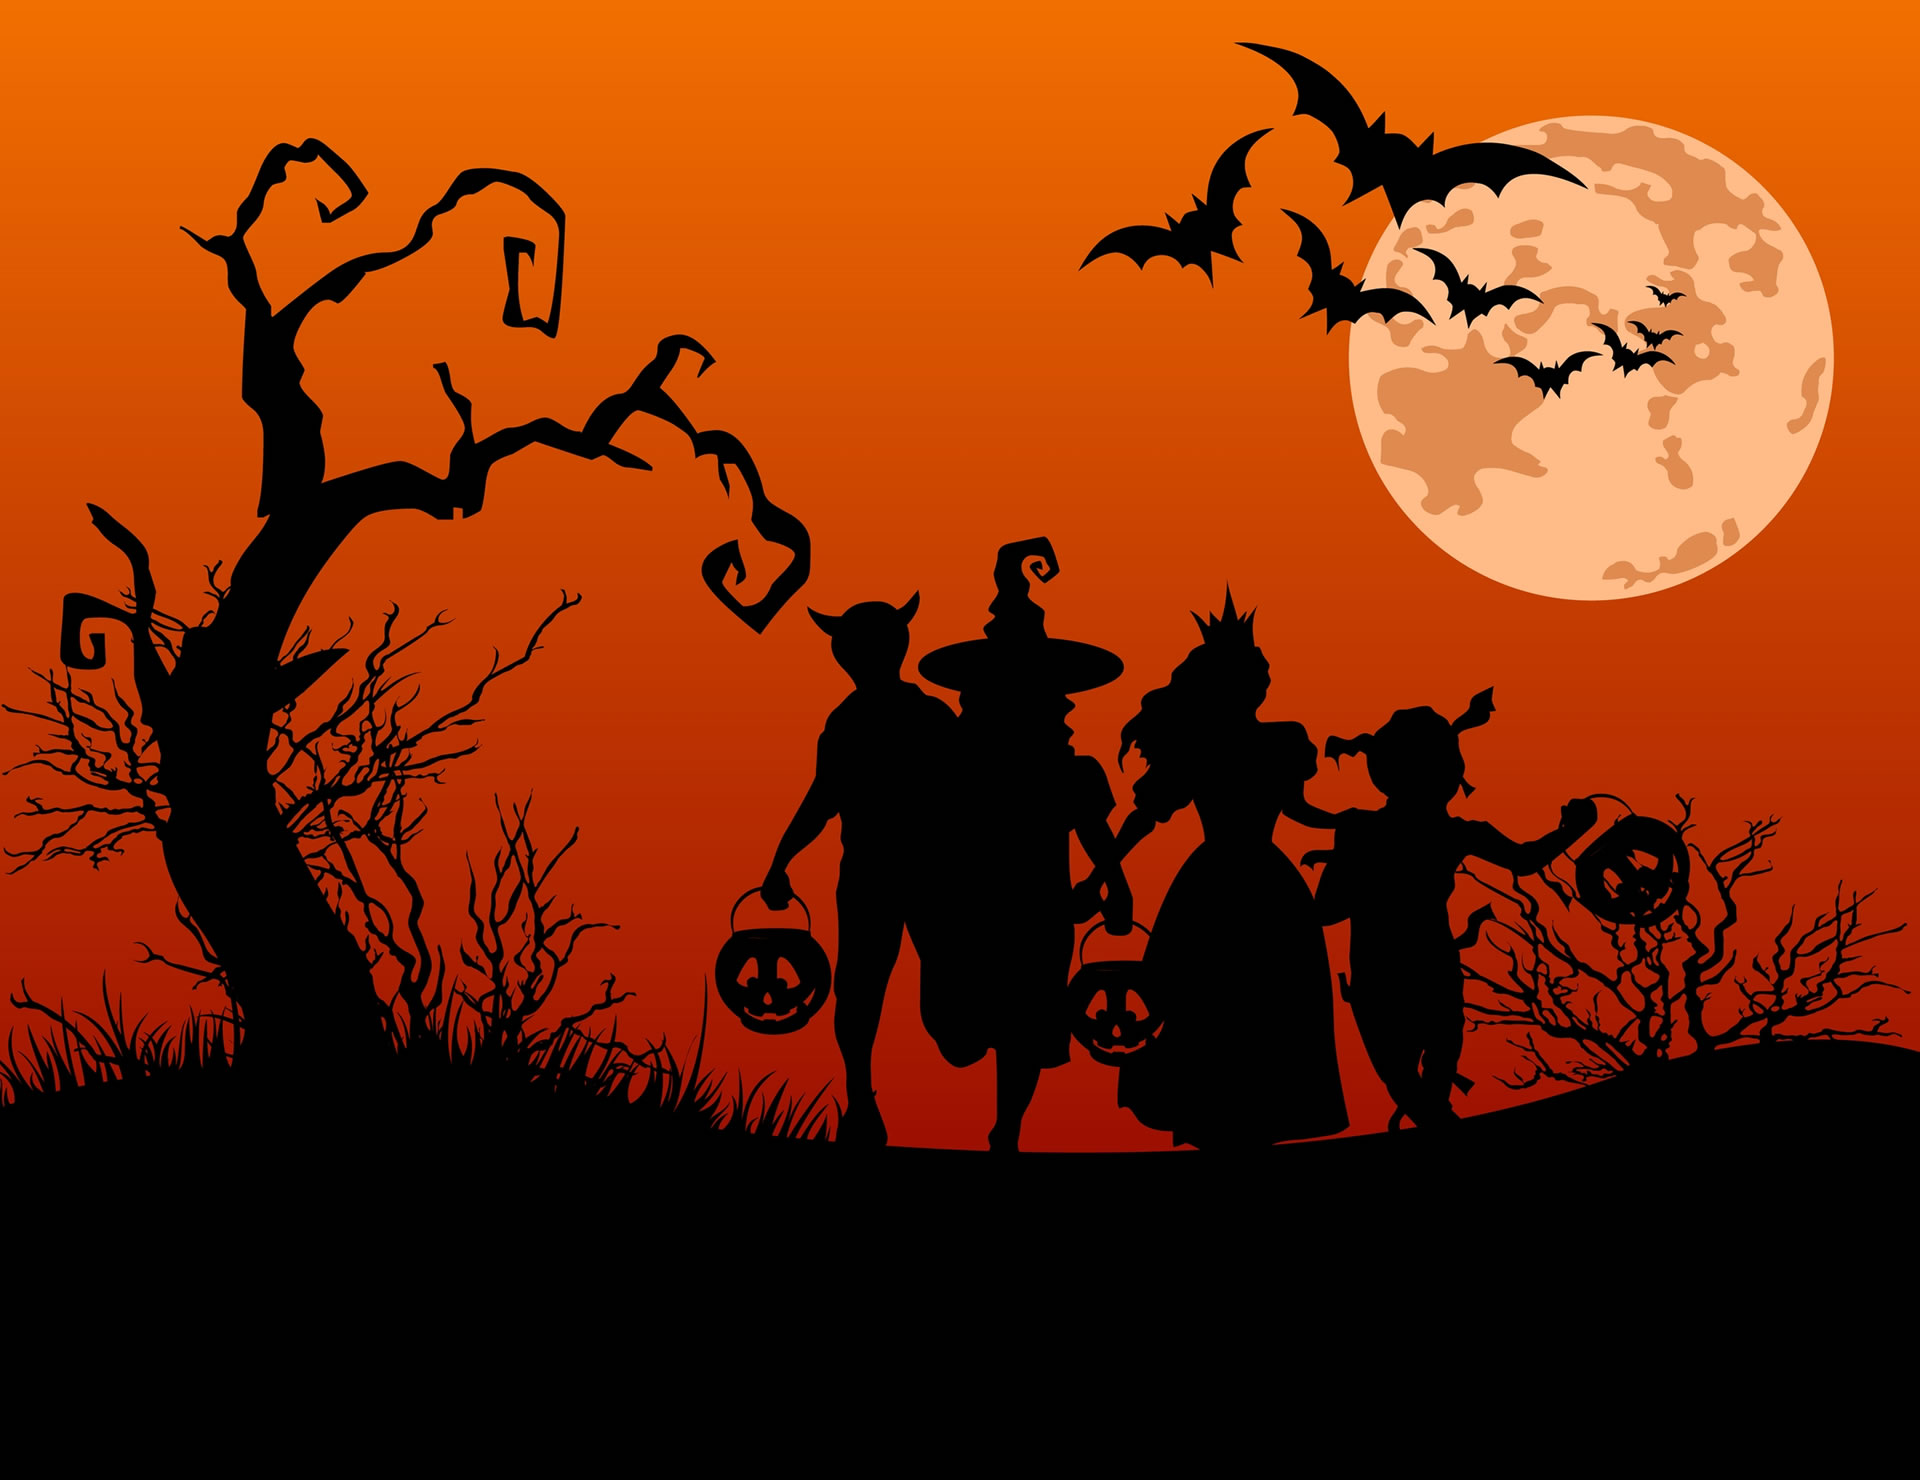 download wallpaper: Halloween silhouetten wallpaper